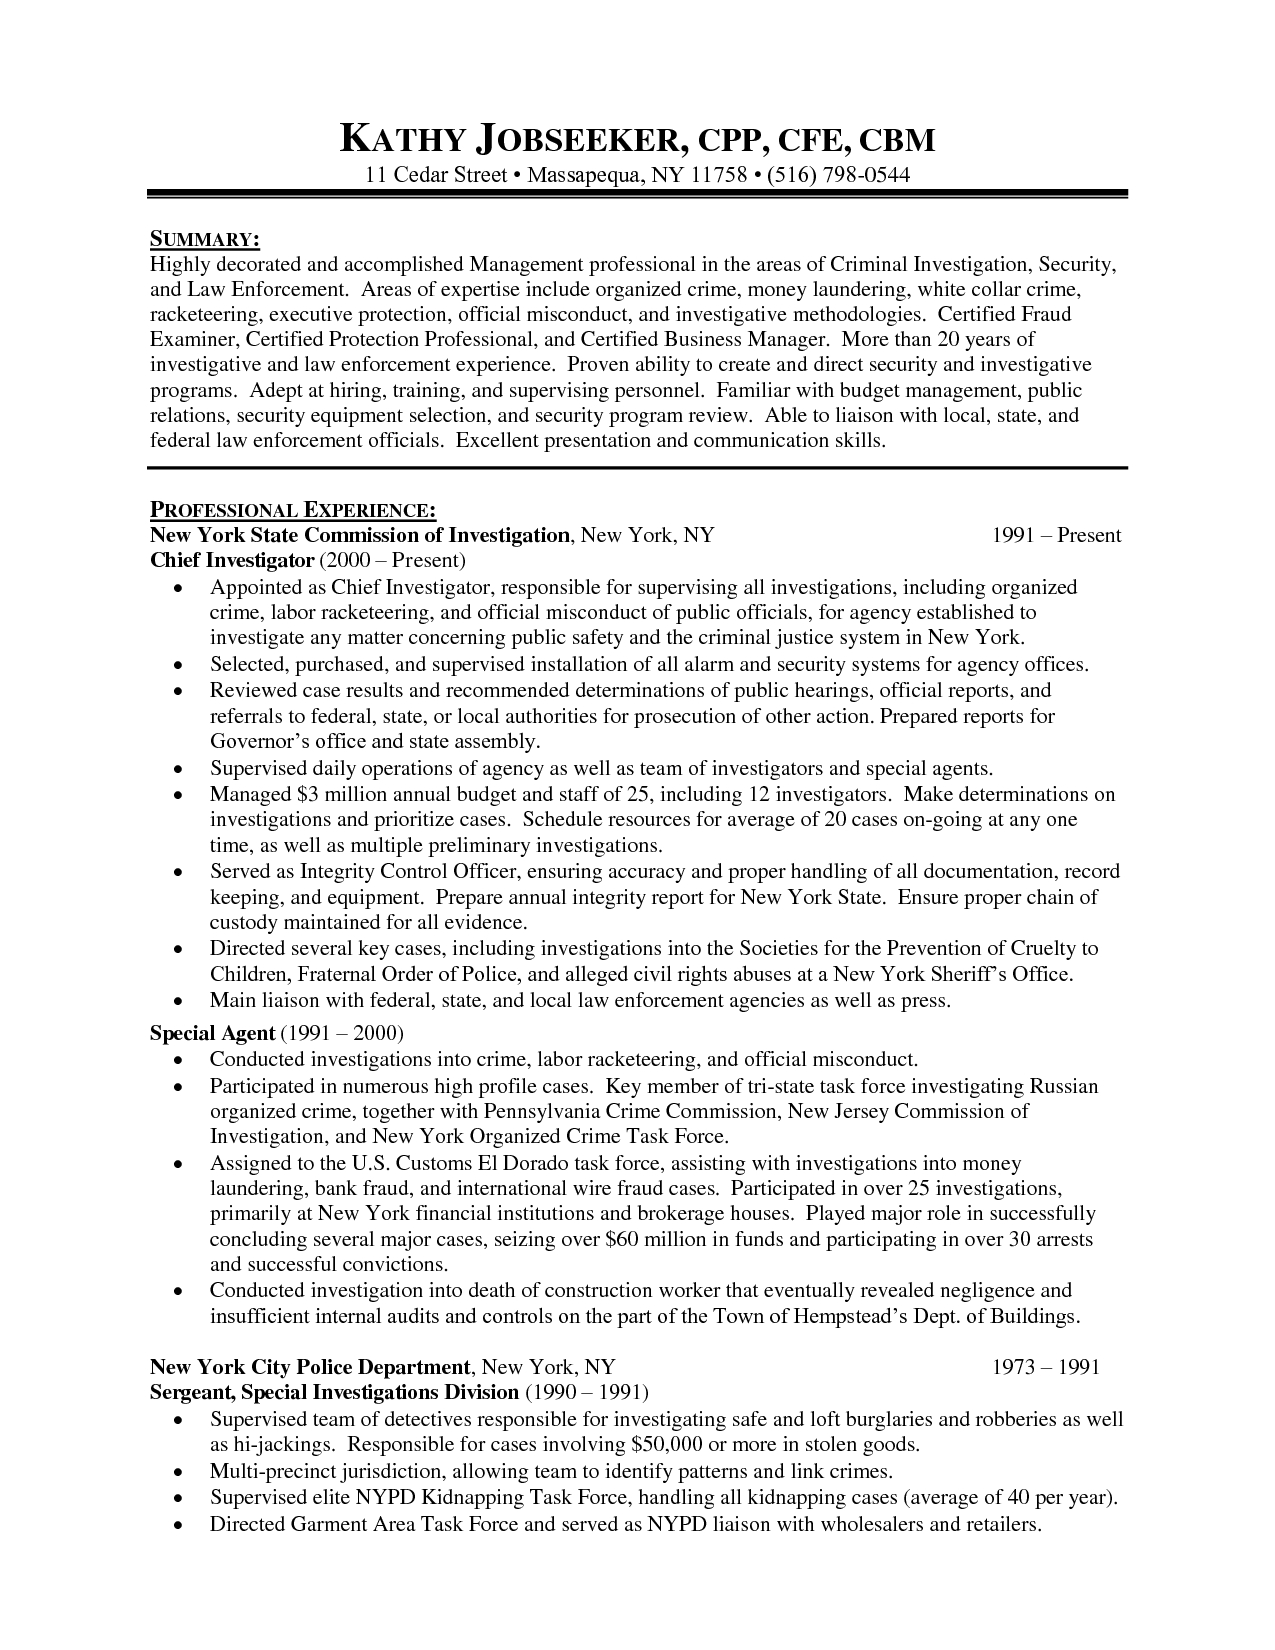 Police Officer Cover Letter Template - Police Ficer Resume Sample Objective Umecareer